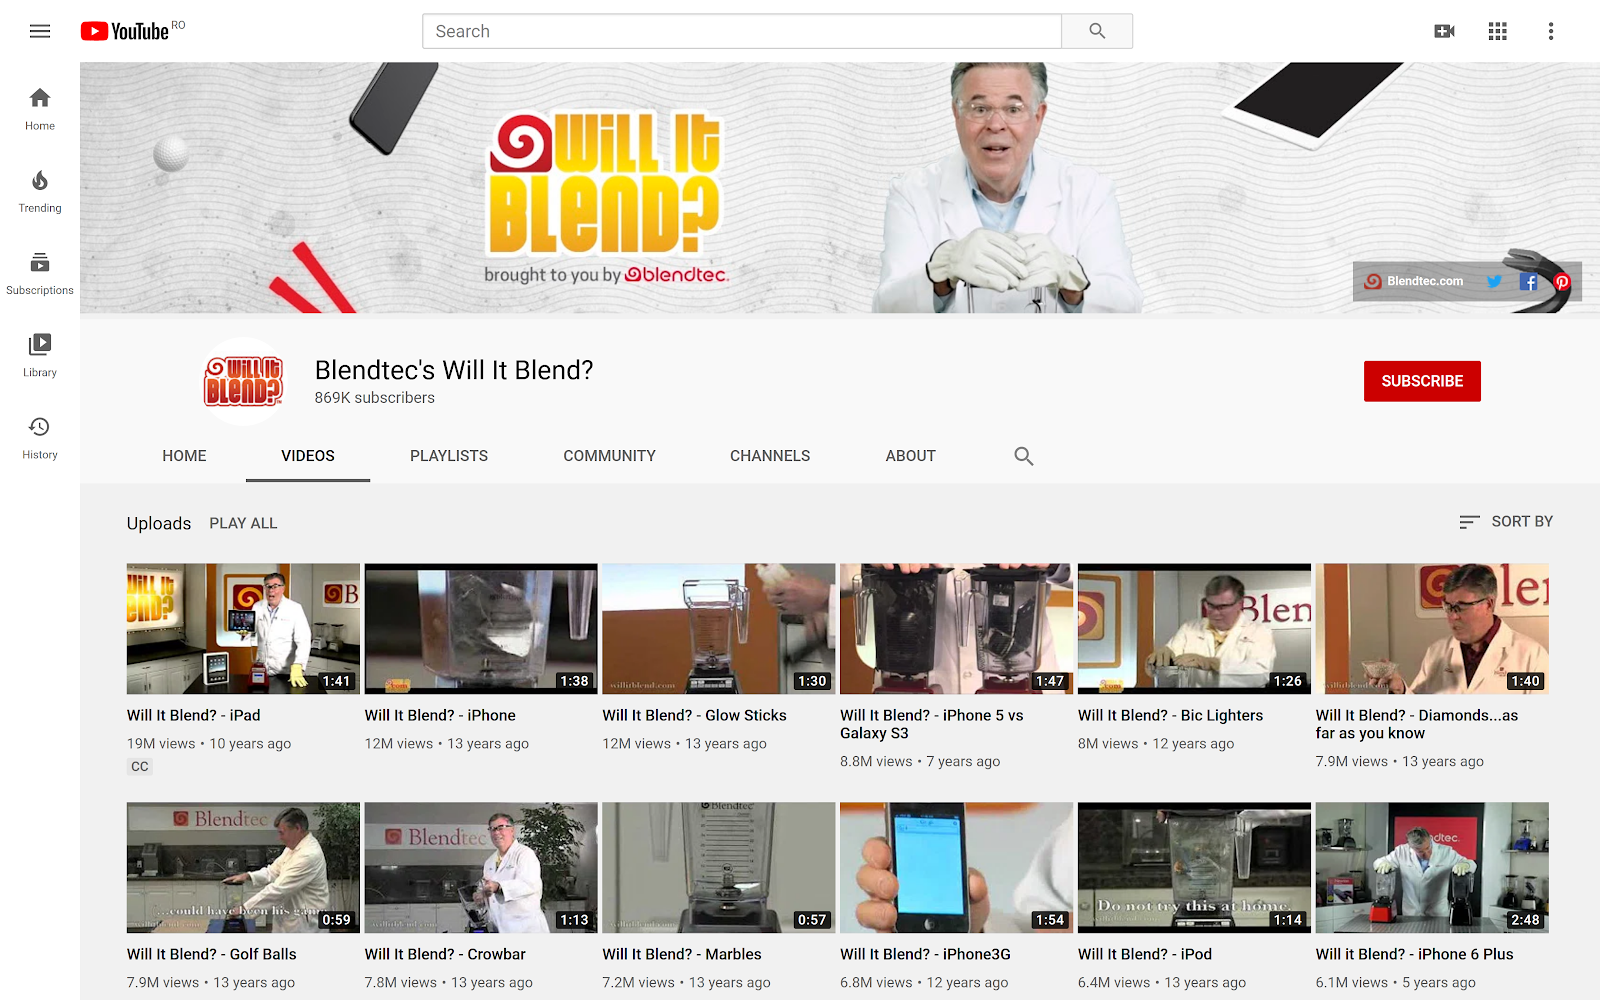 Will It Blend? Blendtec's Unique Approach to Video